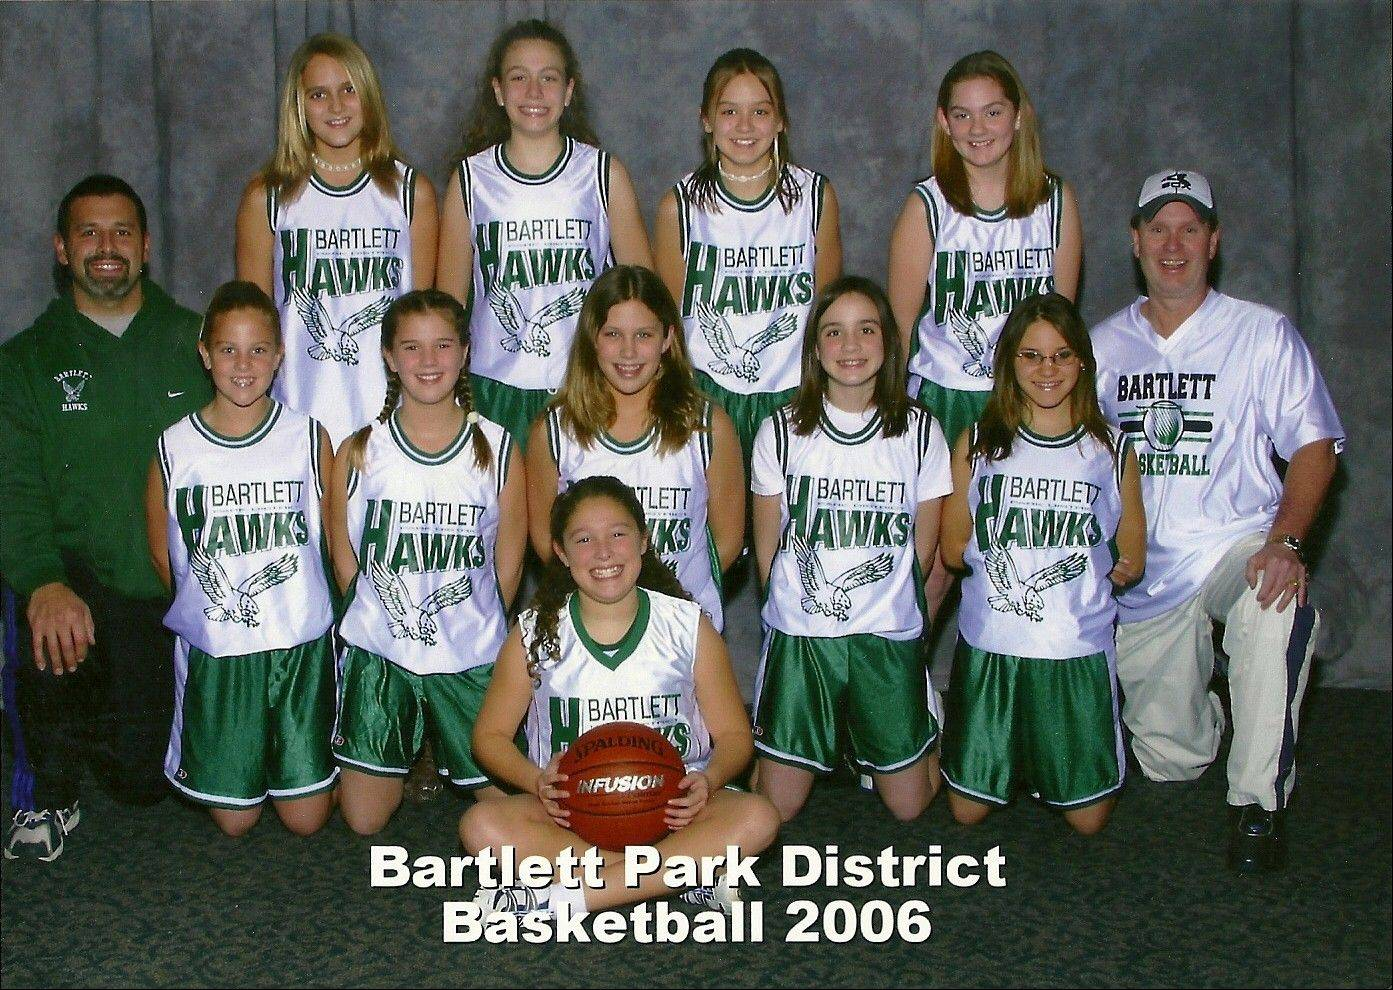 Five of Bartlett's eight seniors have played travel basketball together since sixth grade. They include Haley Videckis, top left, Katie Gutzwiller (next to Videckis), Ashley Johnson, middle left, Lisa Palmer, middle center, and Nicols Gobbo (next to Palmer).